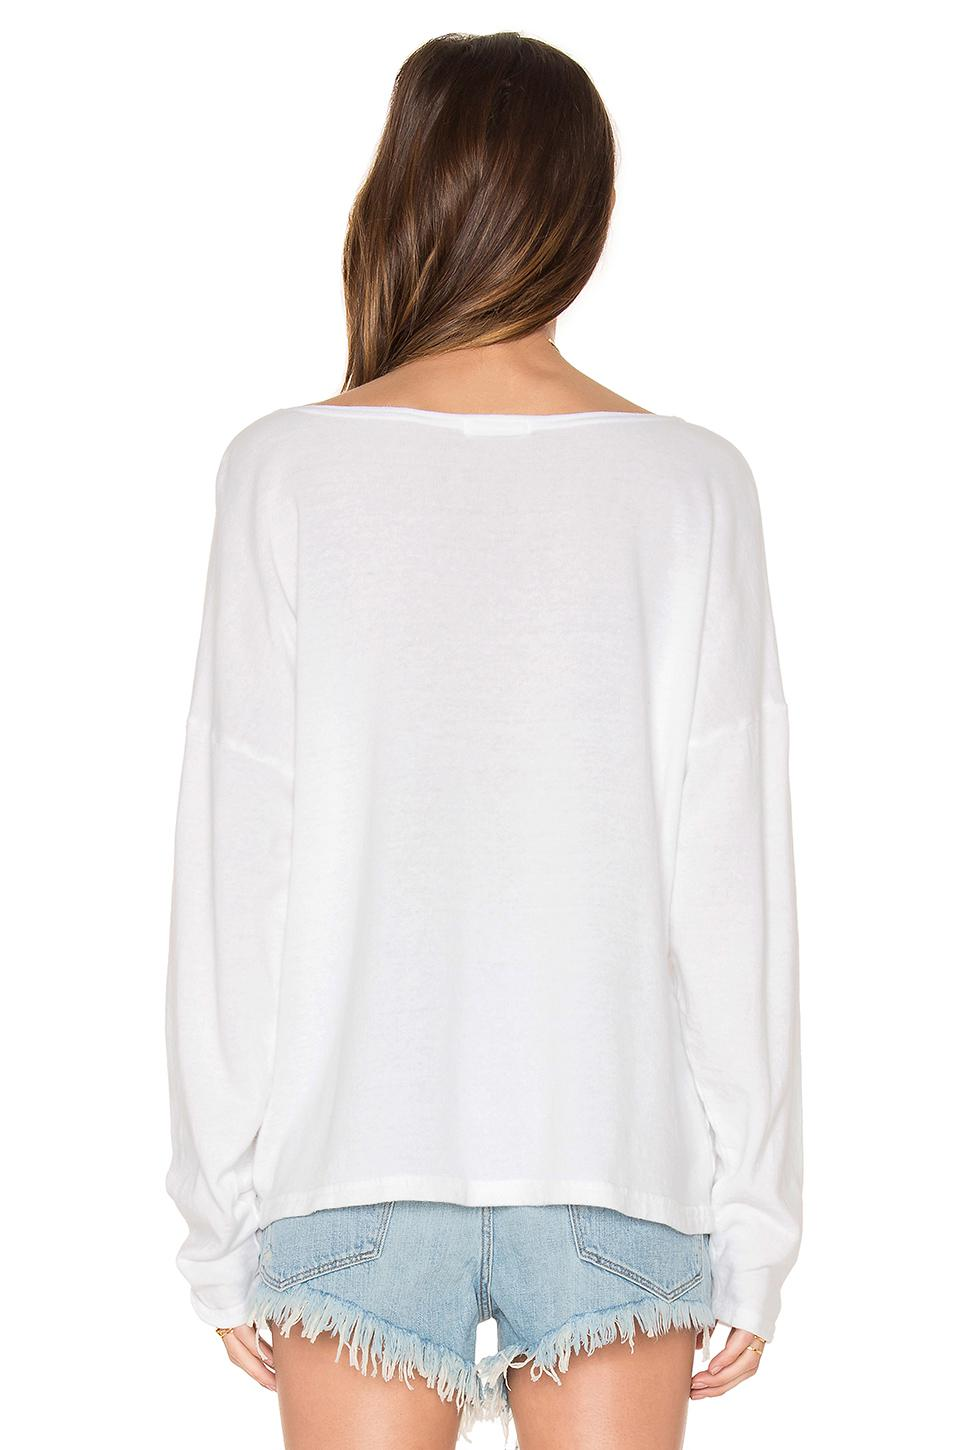 1c904282b22 CP Shades Brittany French Terry Top in White - Lyst